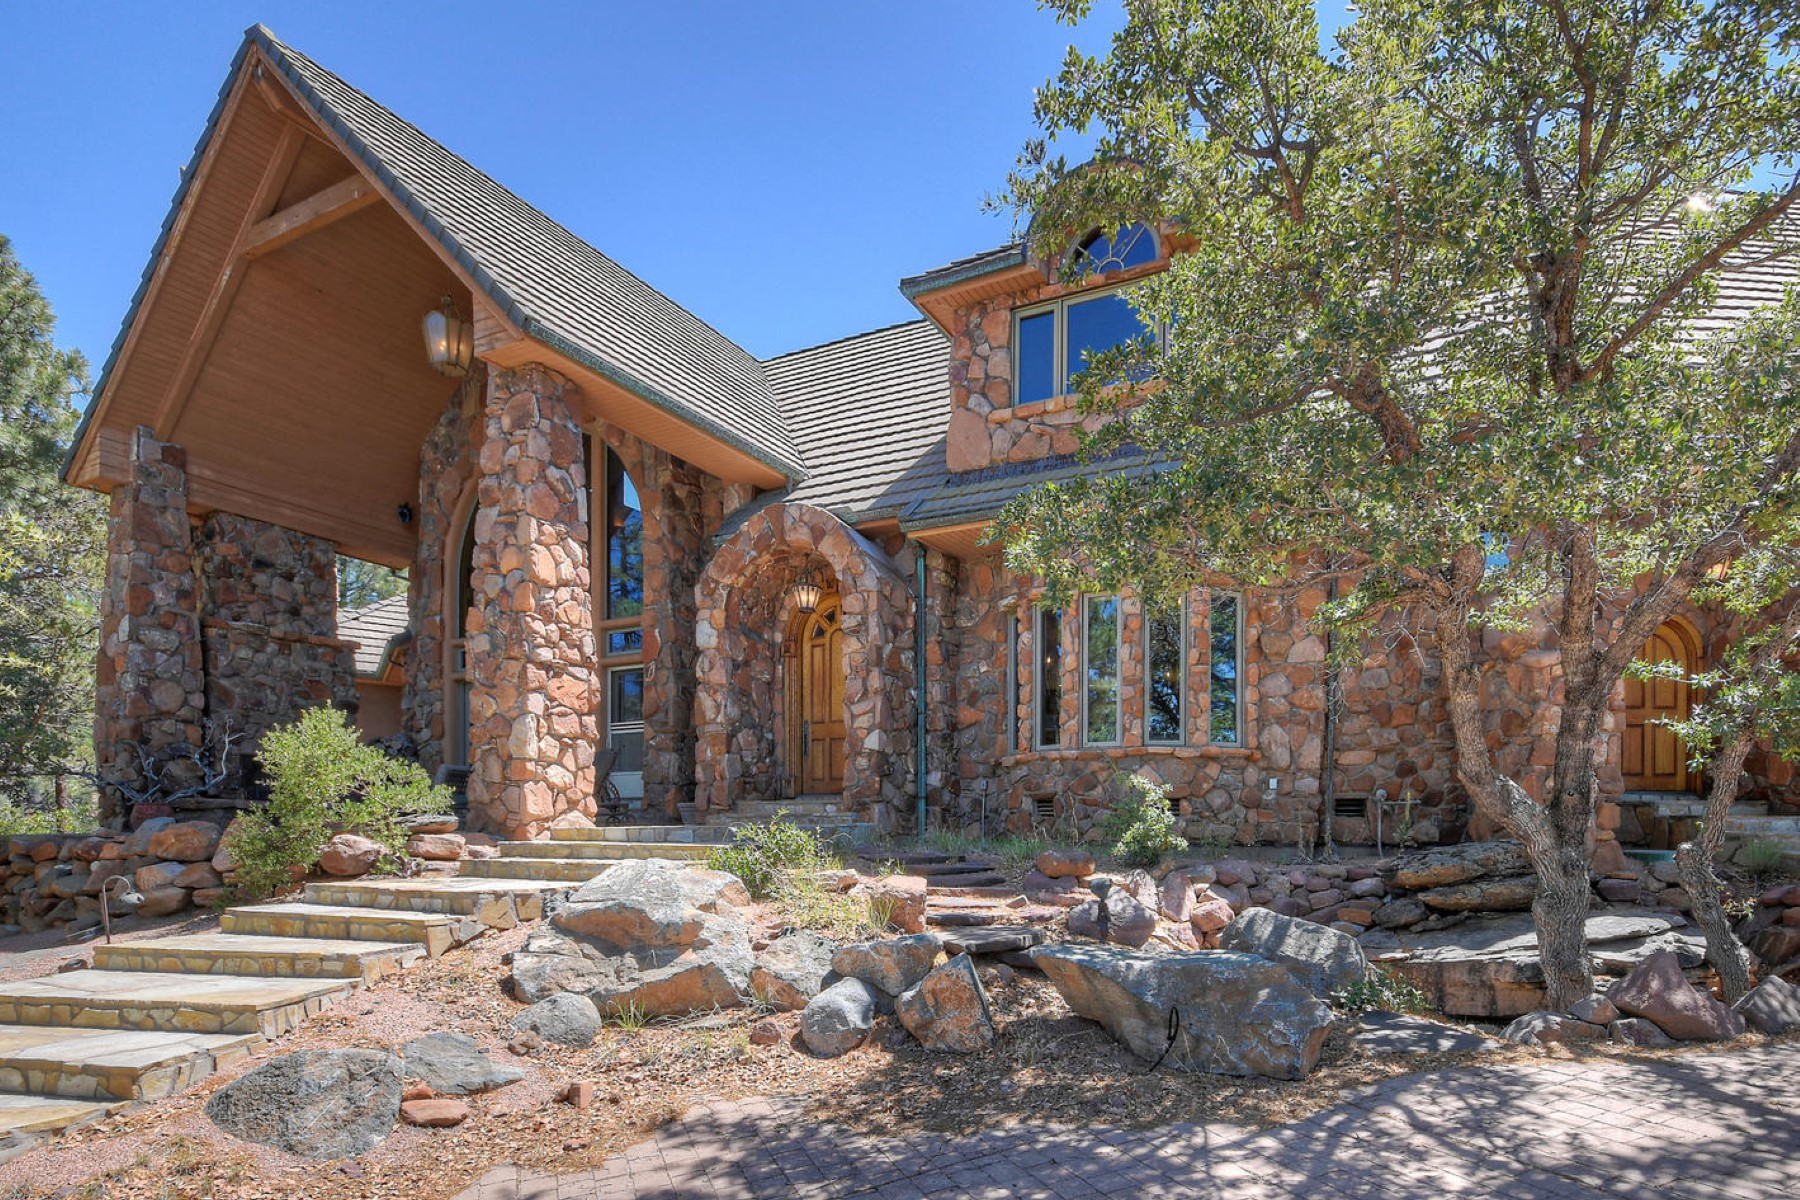 Single Family Homes for Sale at Private 50 Acre retreat in the the tall Ponderosa Pines near Payson 4773 N Walnut Ln Pine, Arizona 85544 United States